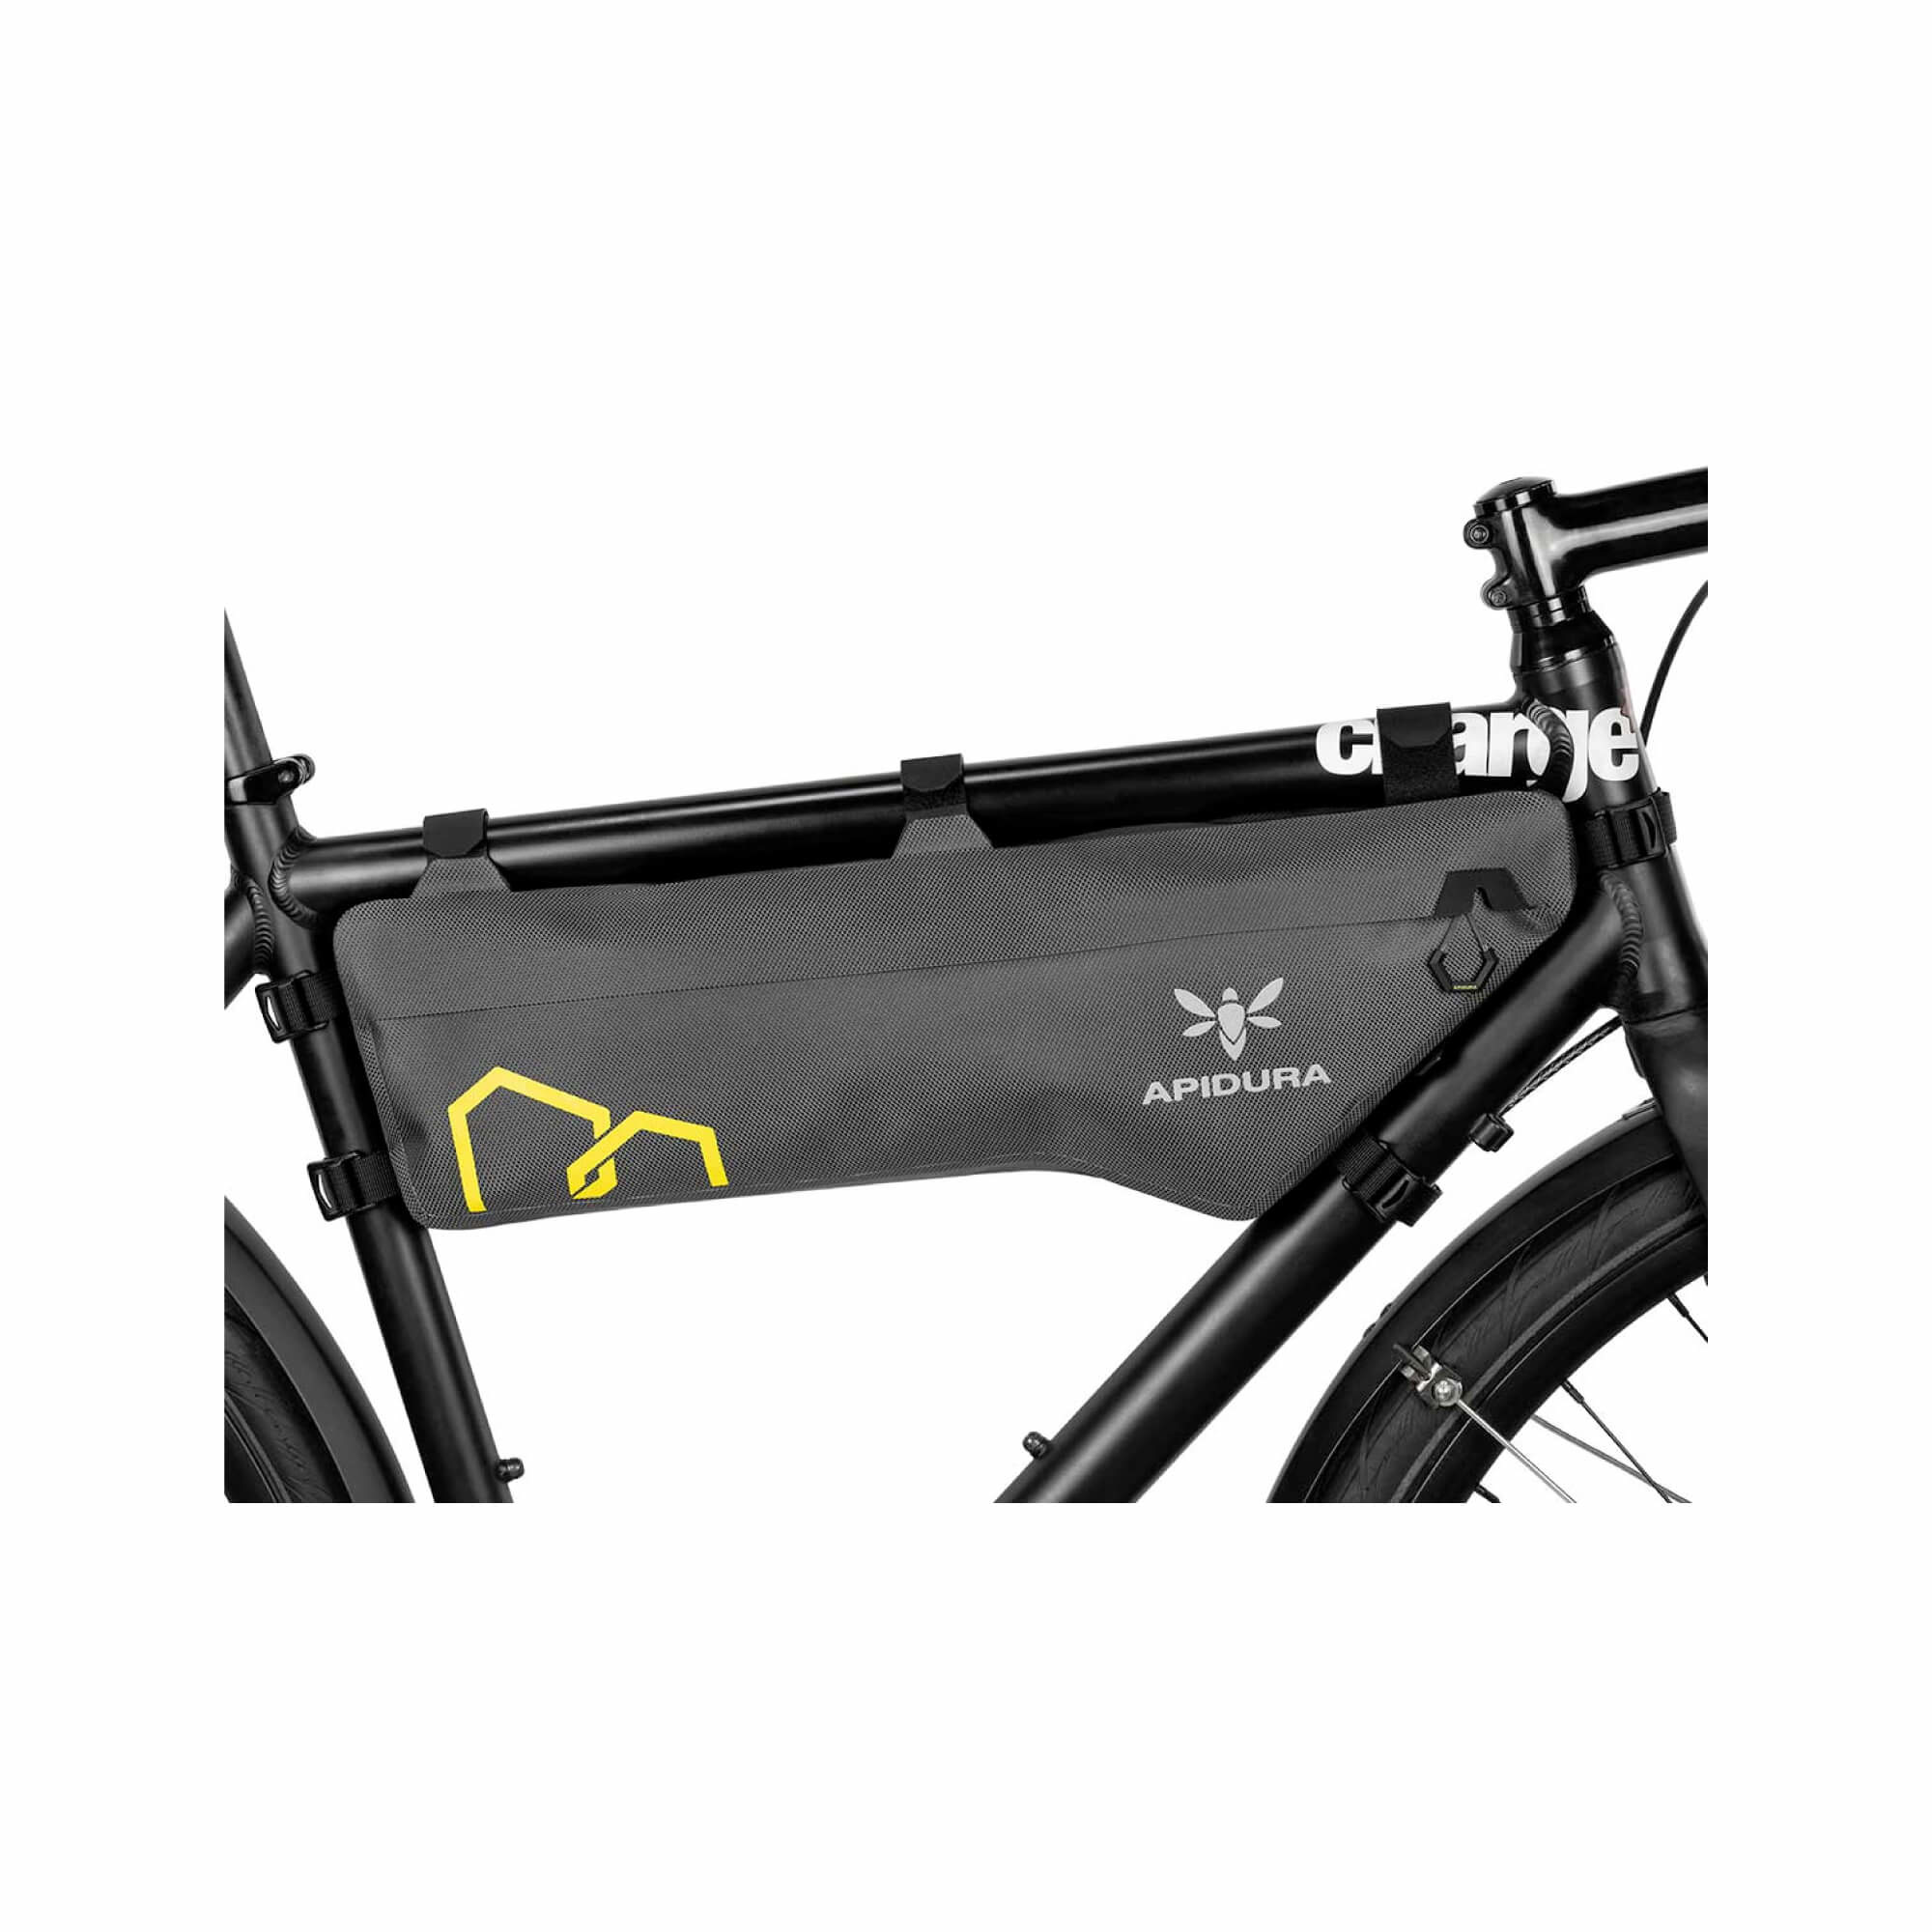 Expedition Frame Pack-5